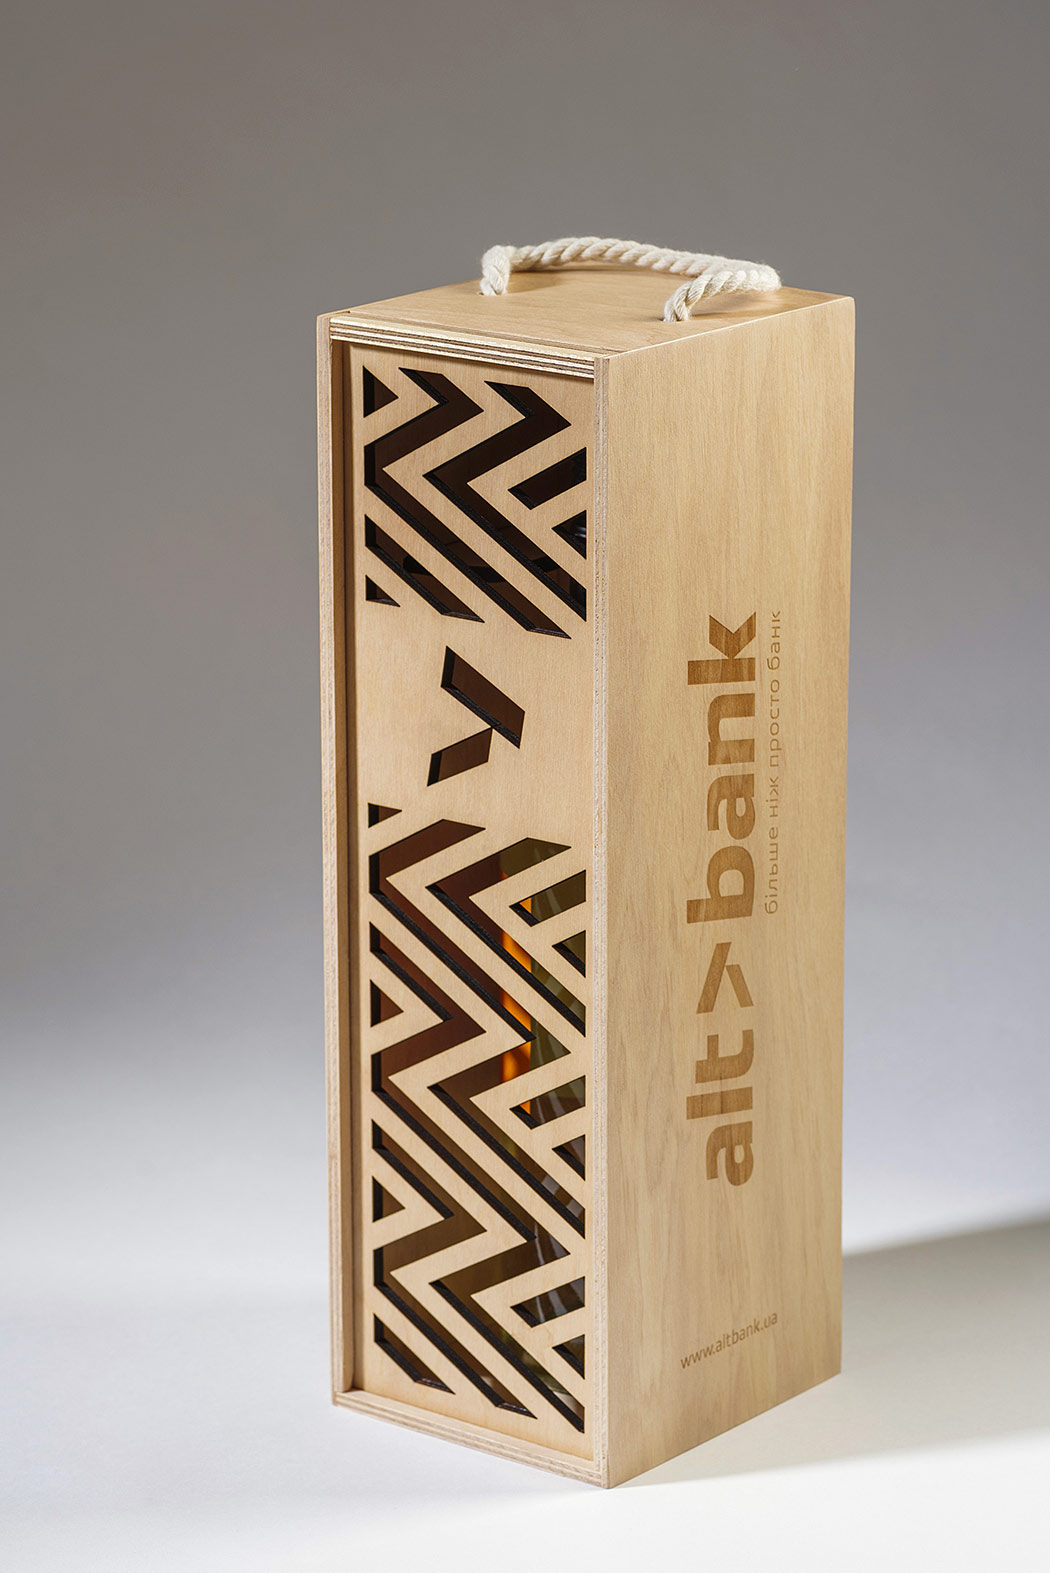 Plywood gift box for a bottle of wine. Design of an ornament for the Altbank plywood box.